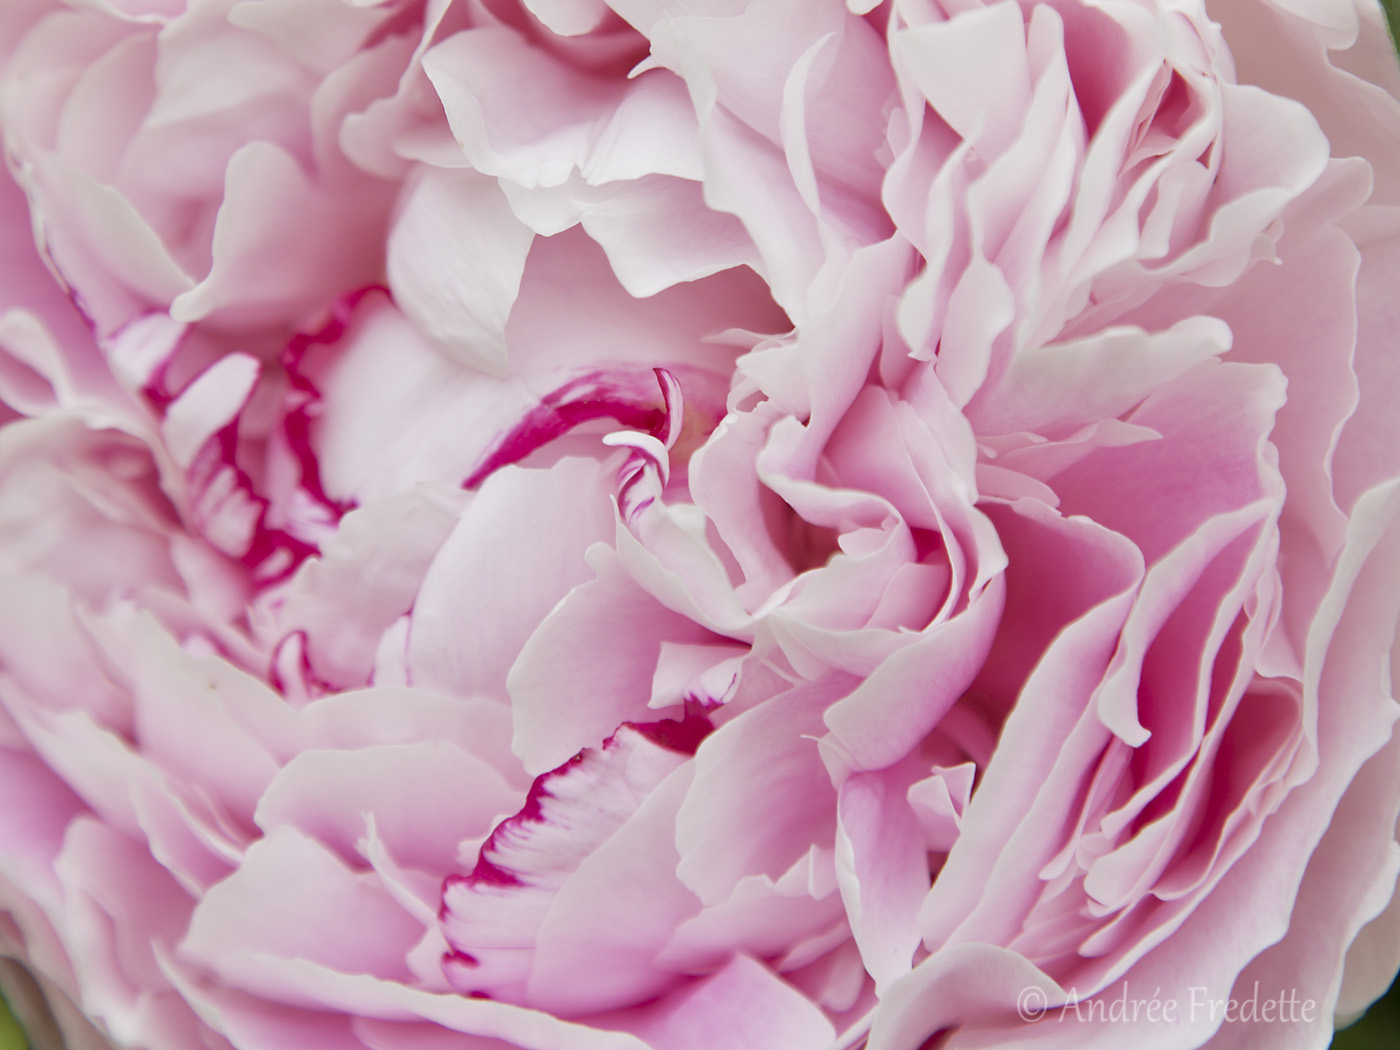 Intimate look at a peony. Photo by Andrée Fredette